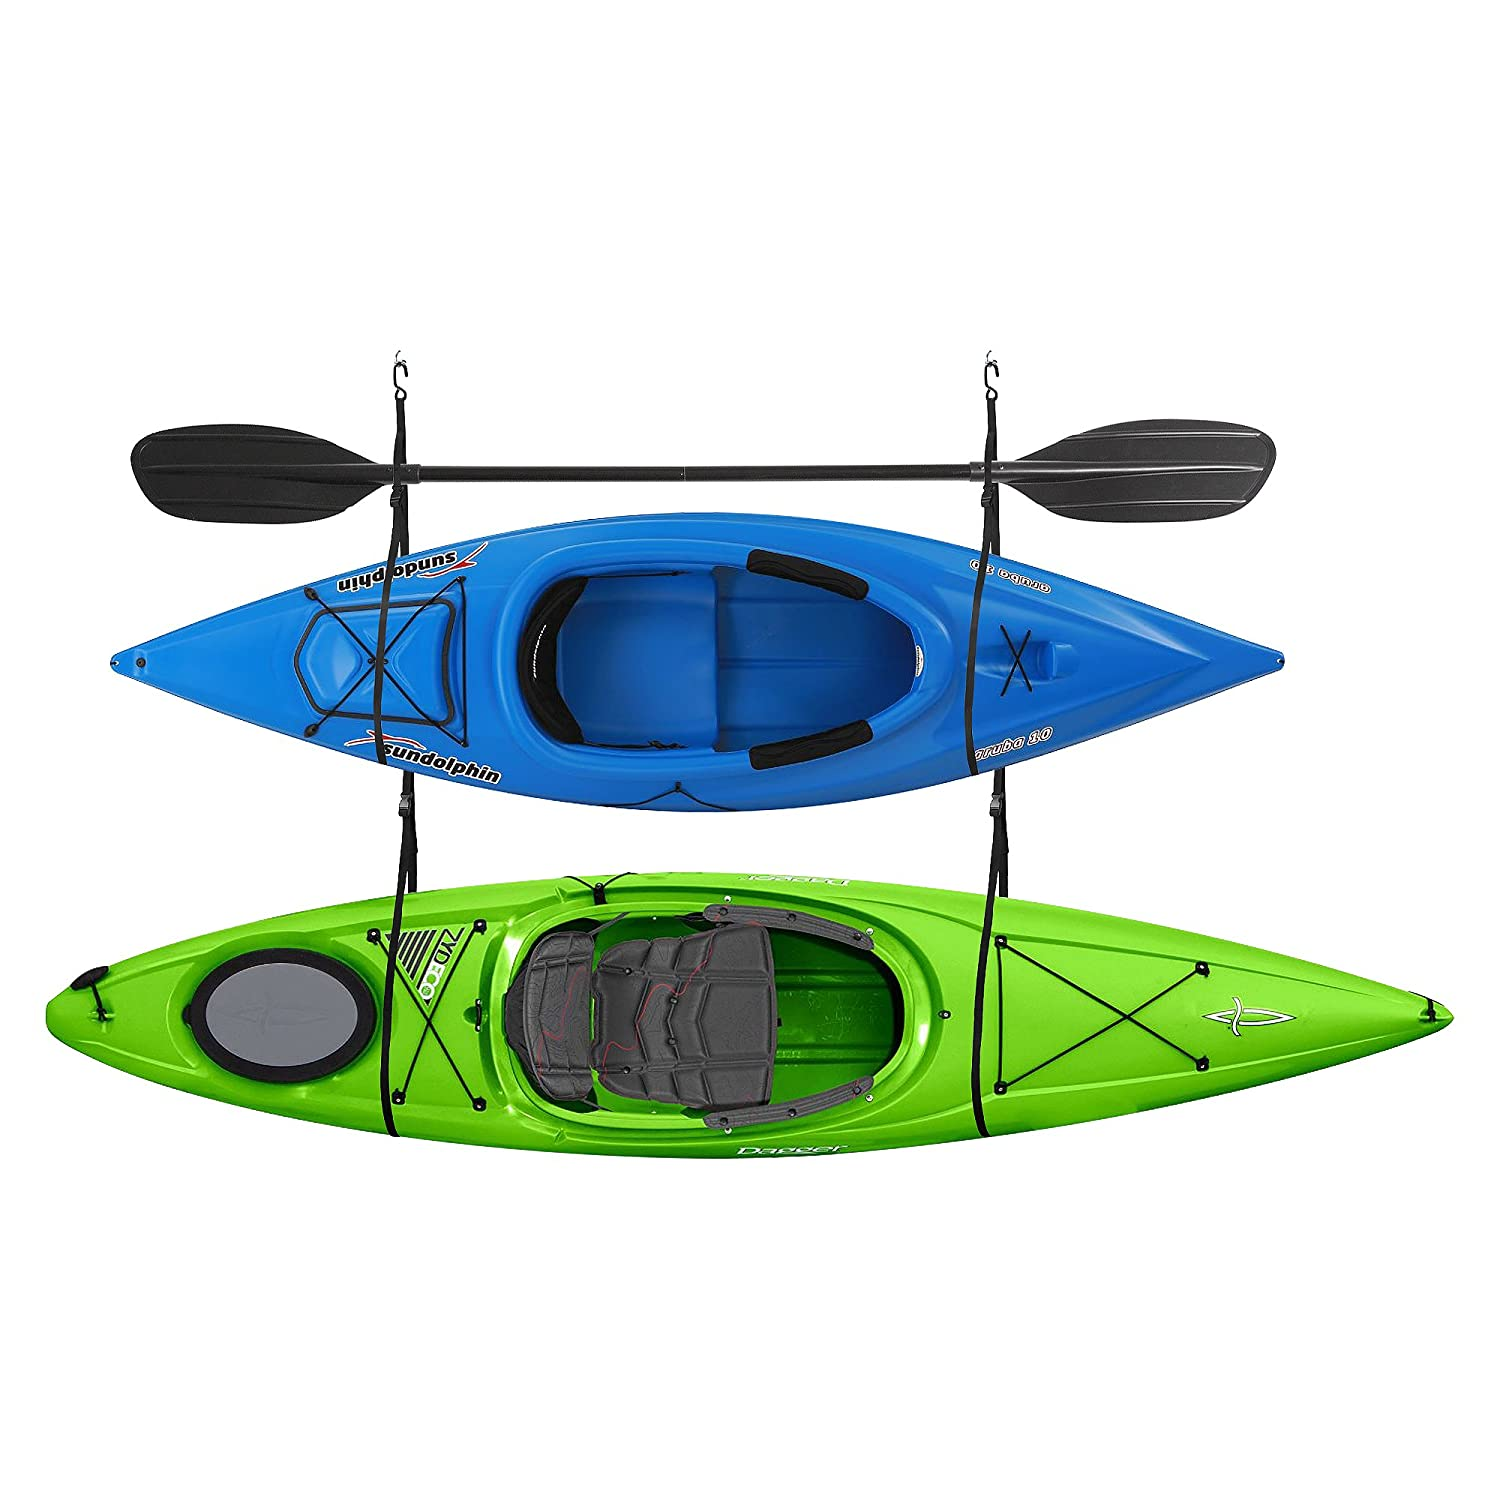 make kayak also storage garage of for to hoist rack the homemade full with a build diy together size